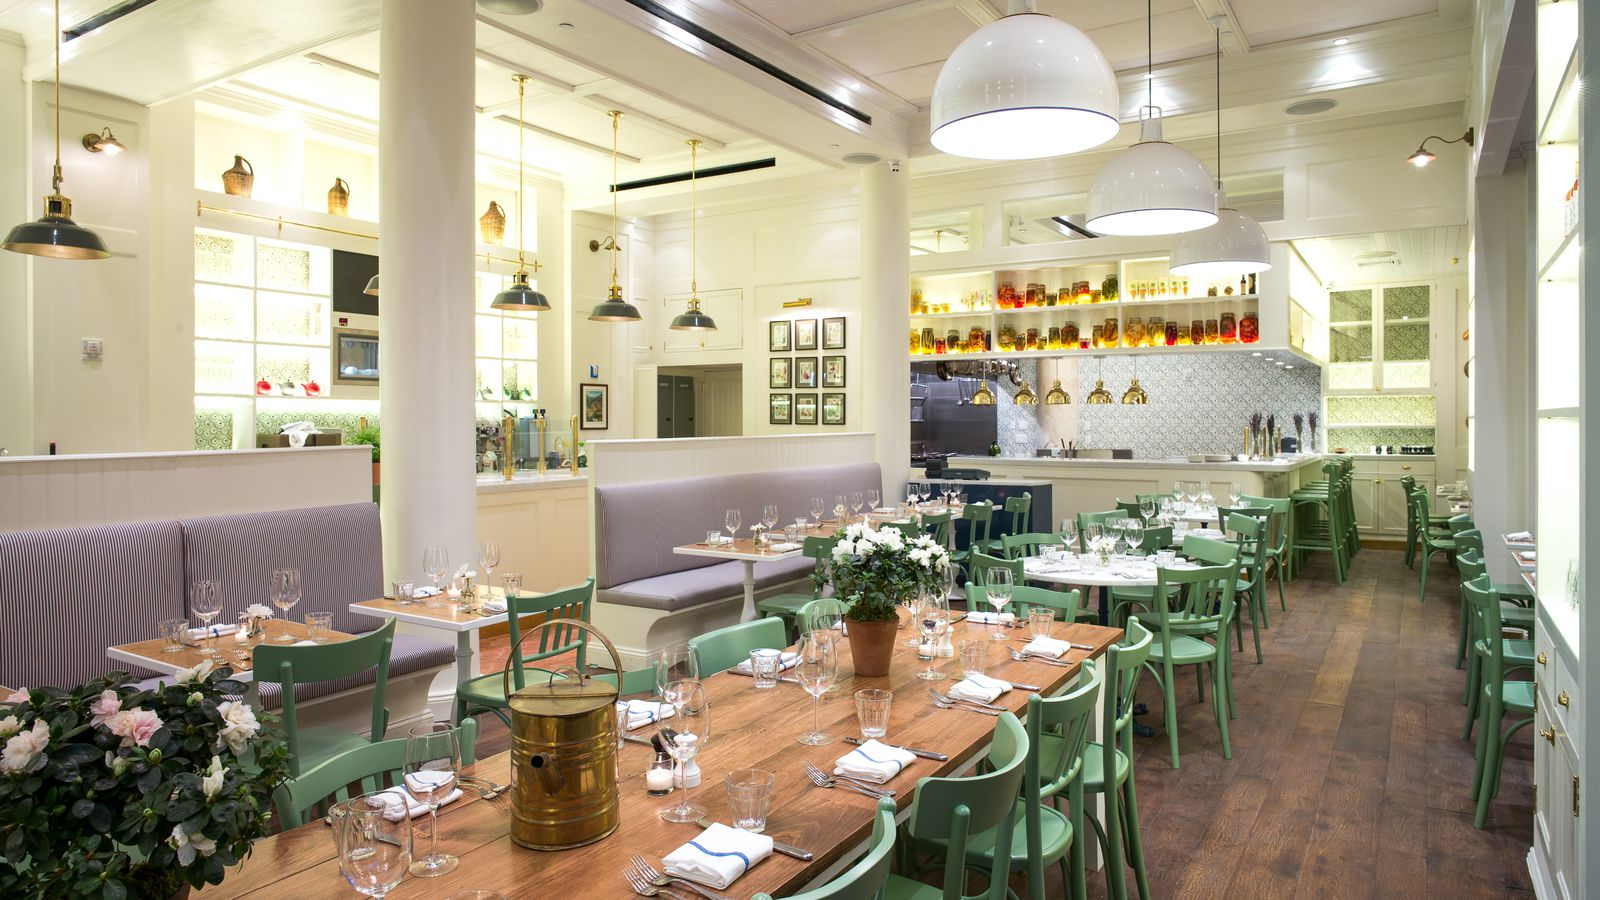 La Pecora Bianca Begins Serving Rustic Italian Fare Near Madison Square Park TONIGHT